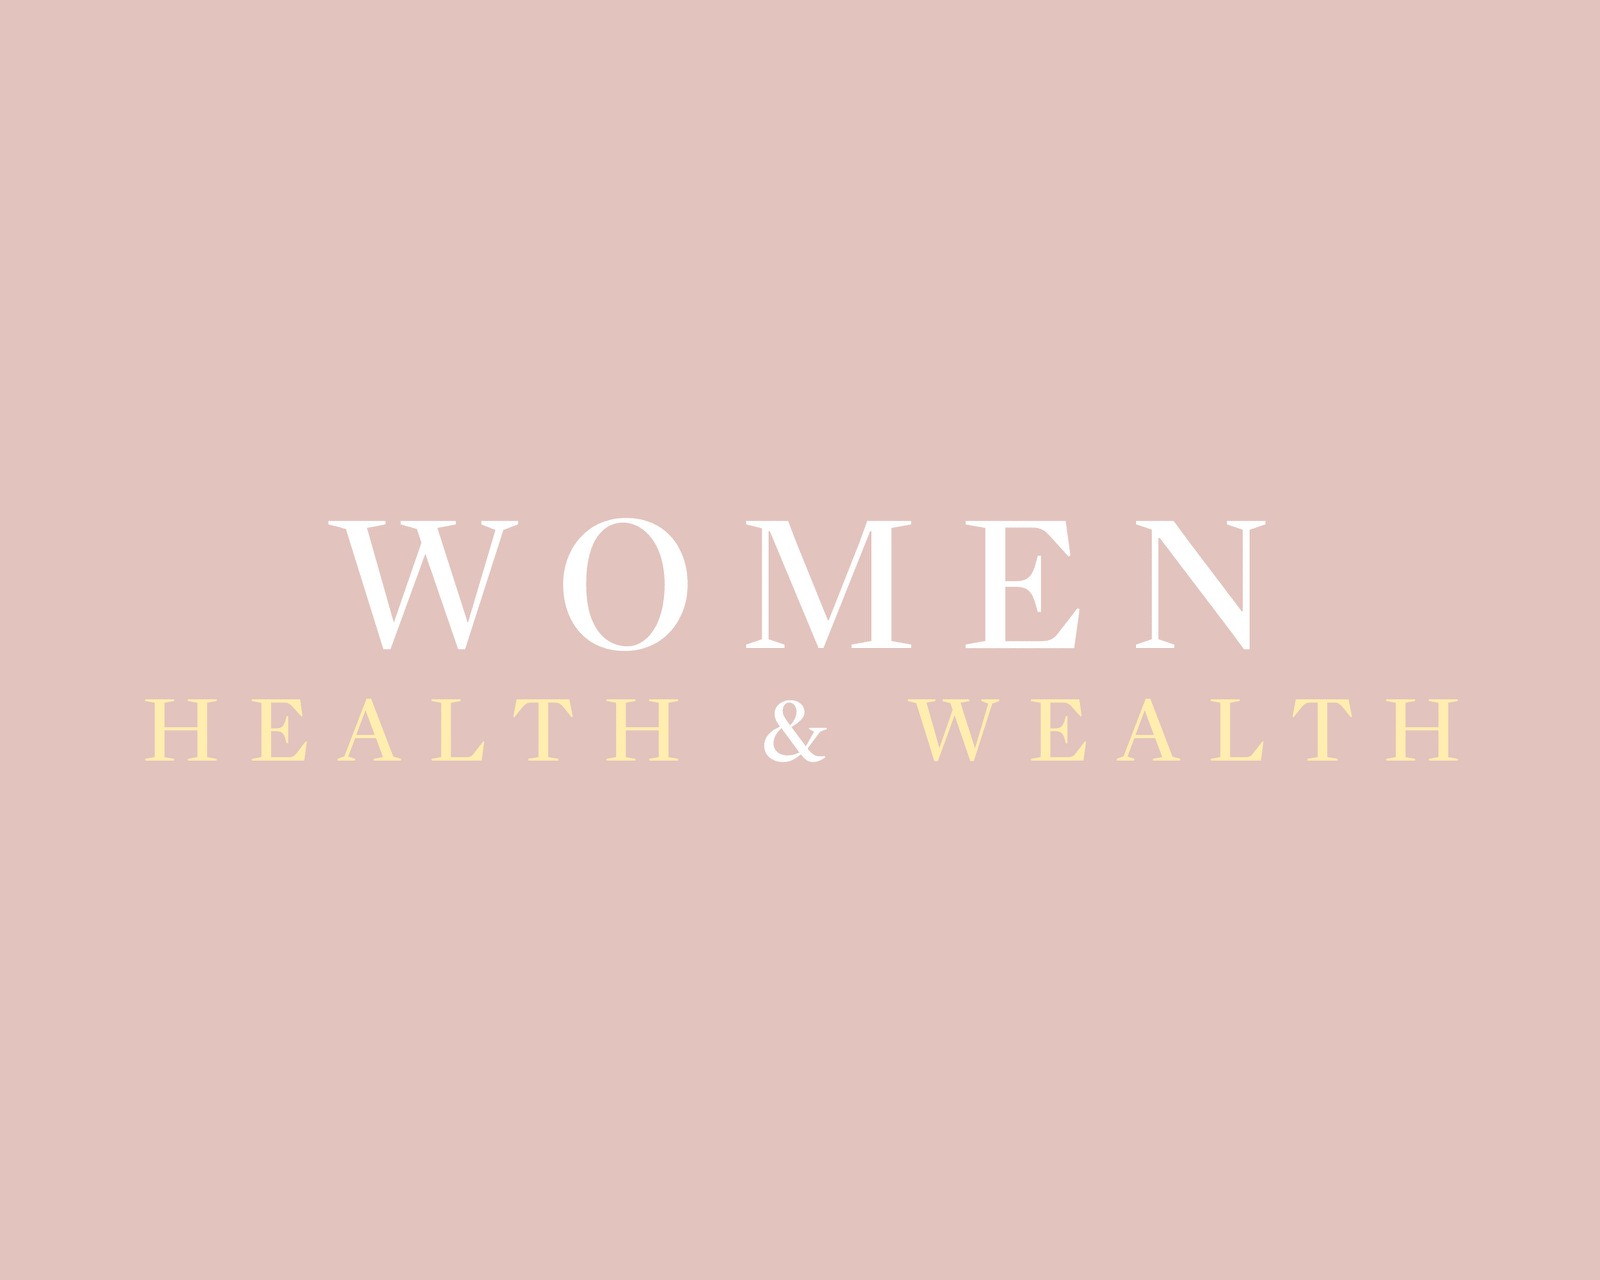 Fierce Females | Women's Health & Wealth